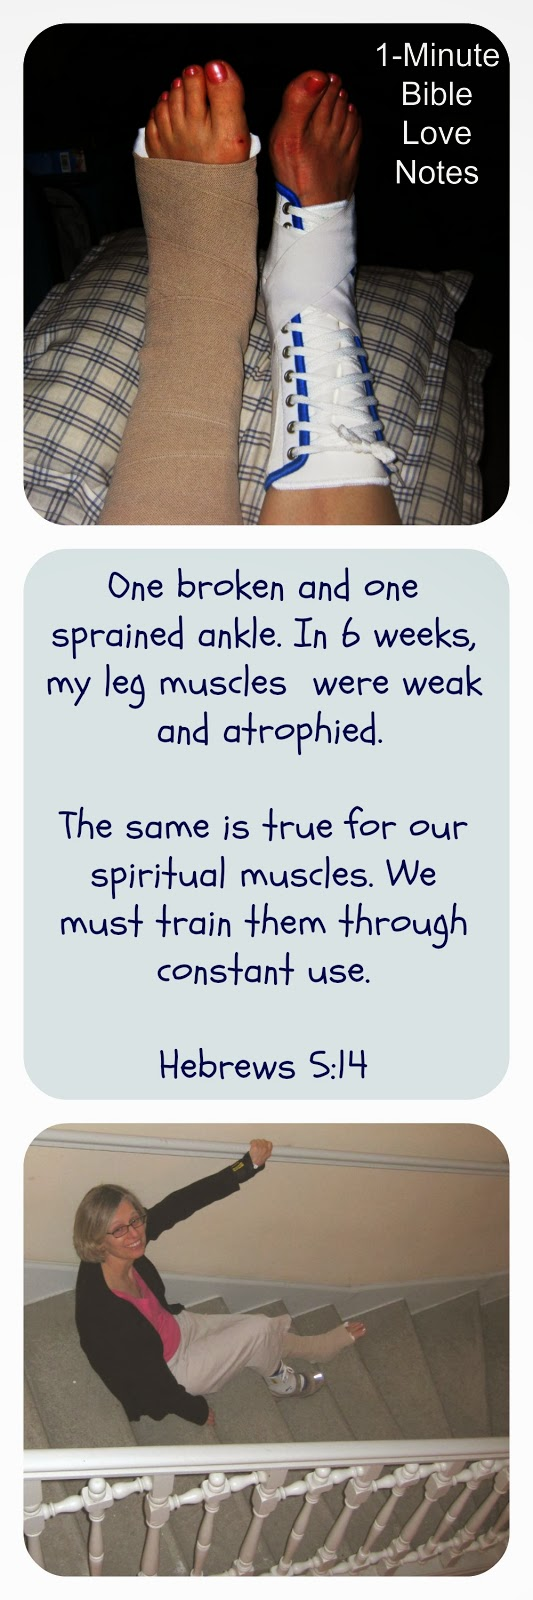 physical atrophy, spiritual atrophy, Hebrews 5:14, constant use of spiritual muscles